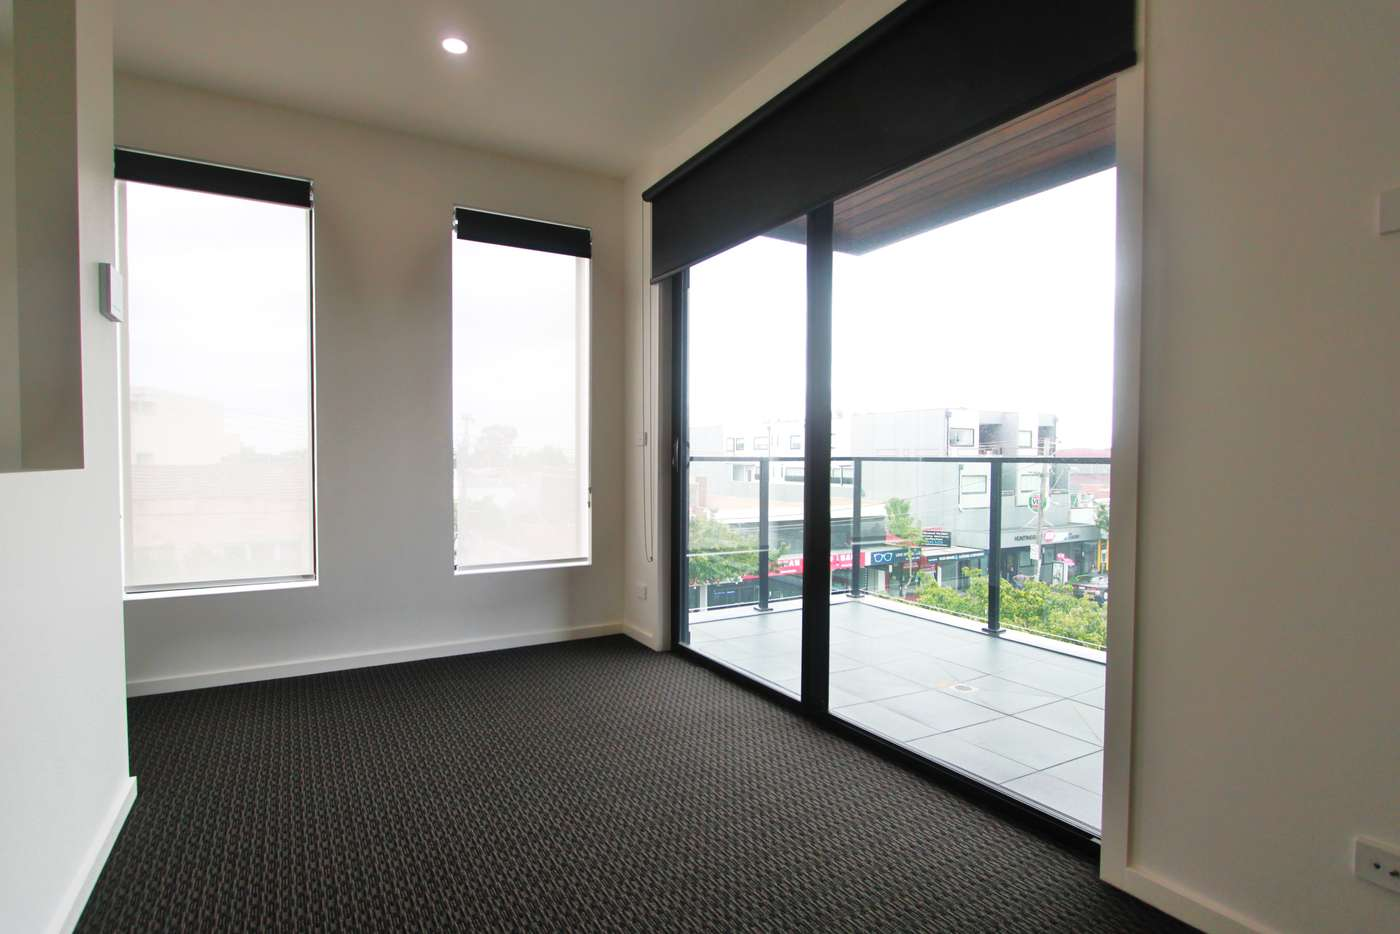 Main view of Homely apartment listing, 1/302 Huntingdale Road, Huntingdale VIC 3166